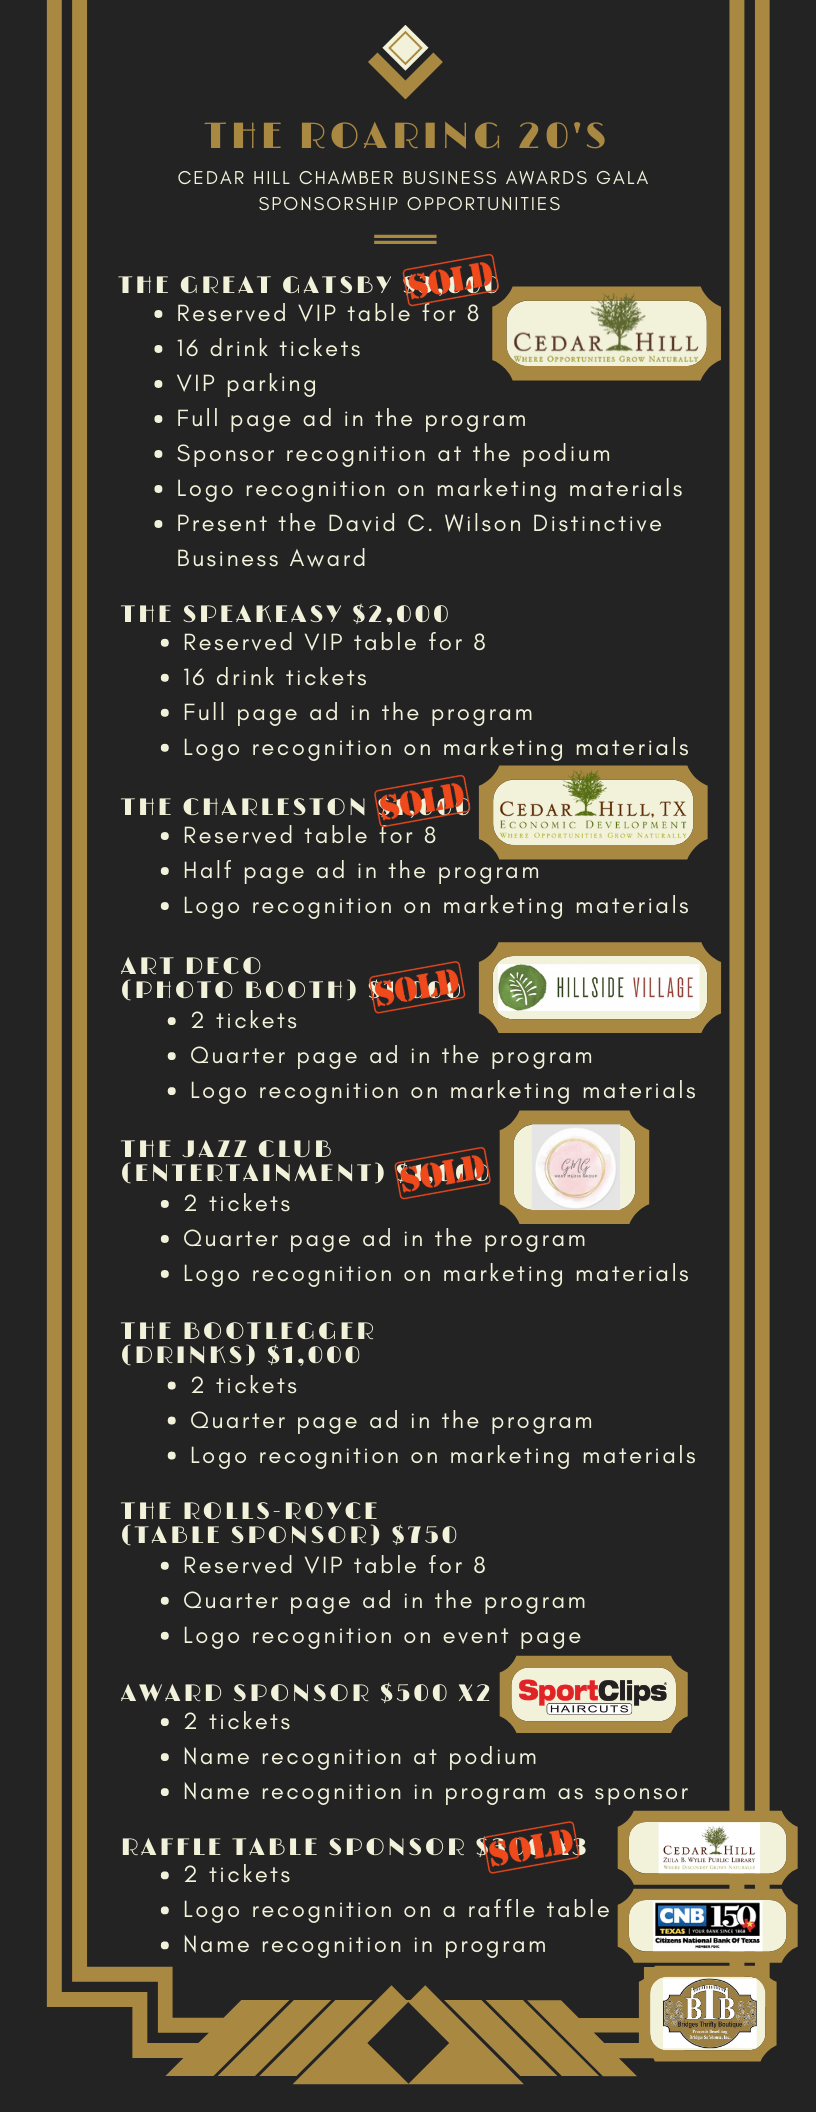 Gala-2020-Sponsorships-Seamless.png